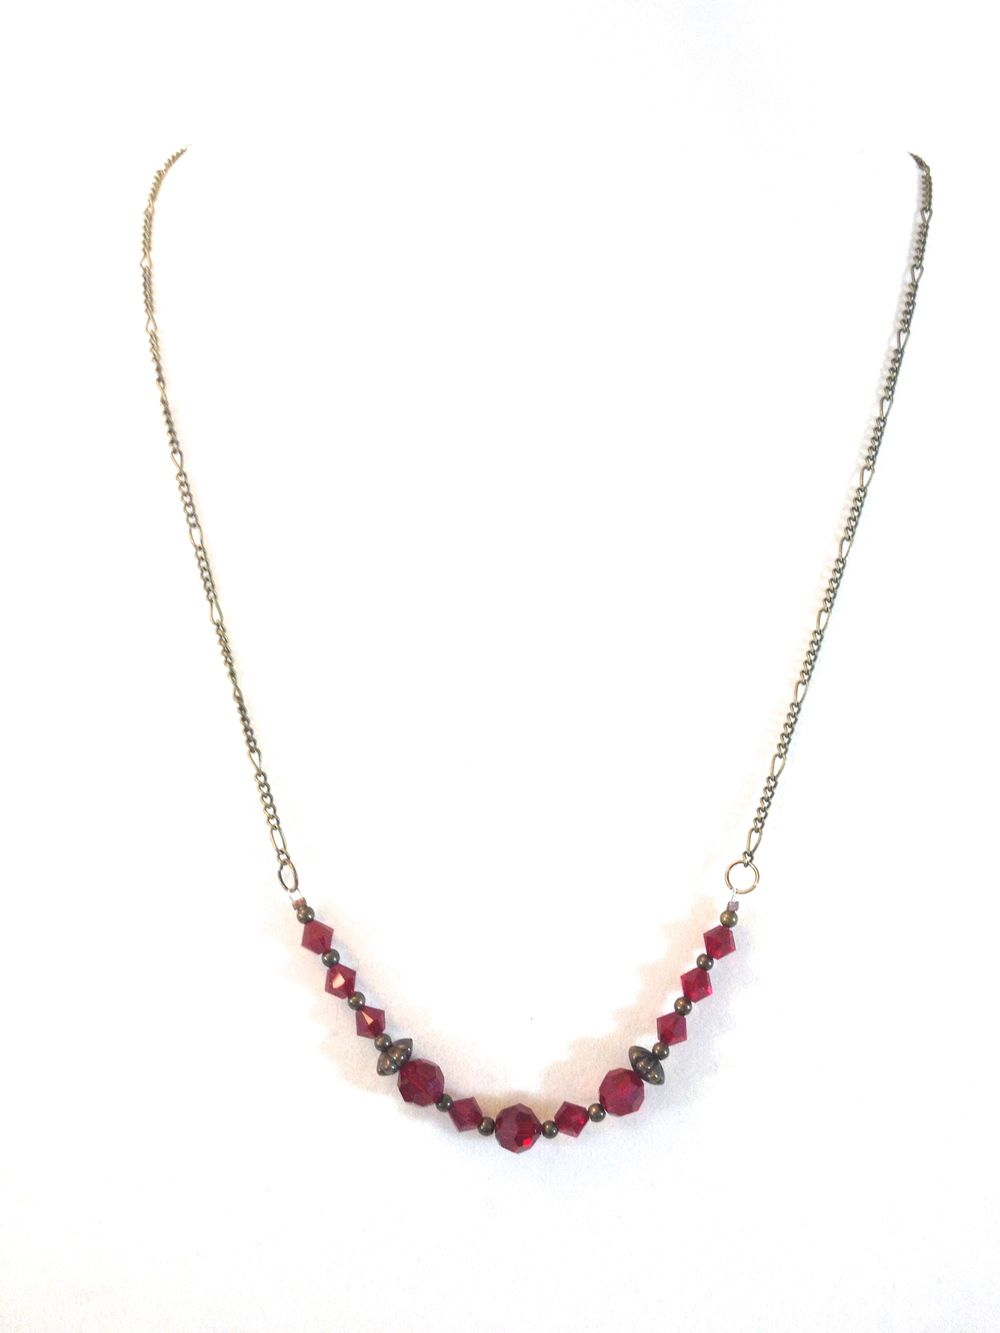 """Garnet and Gold  $18.00 25"""" of antique gold-tone figaro chain and accents and deep garnet red Swarovski crystals.  Dramatic.  #handmade #jewelry #bracelet #necklace #earrings #swarovski"""